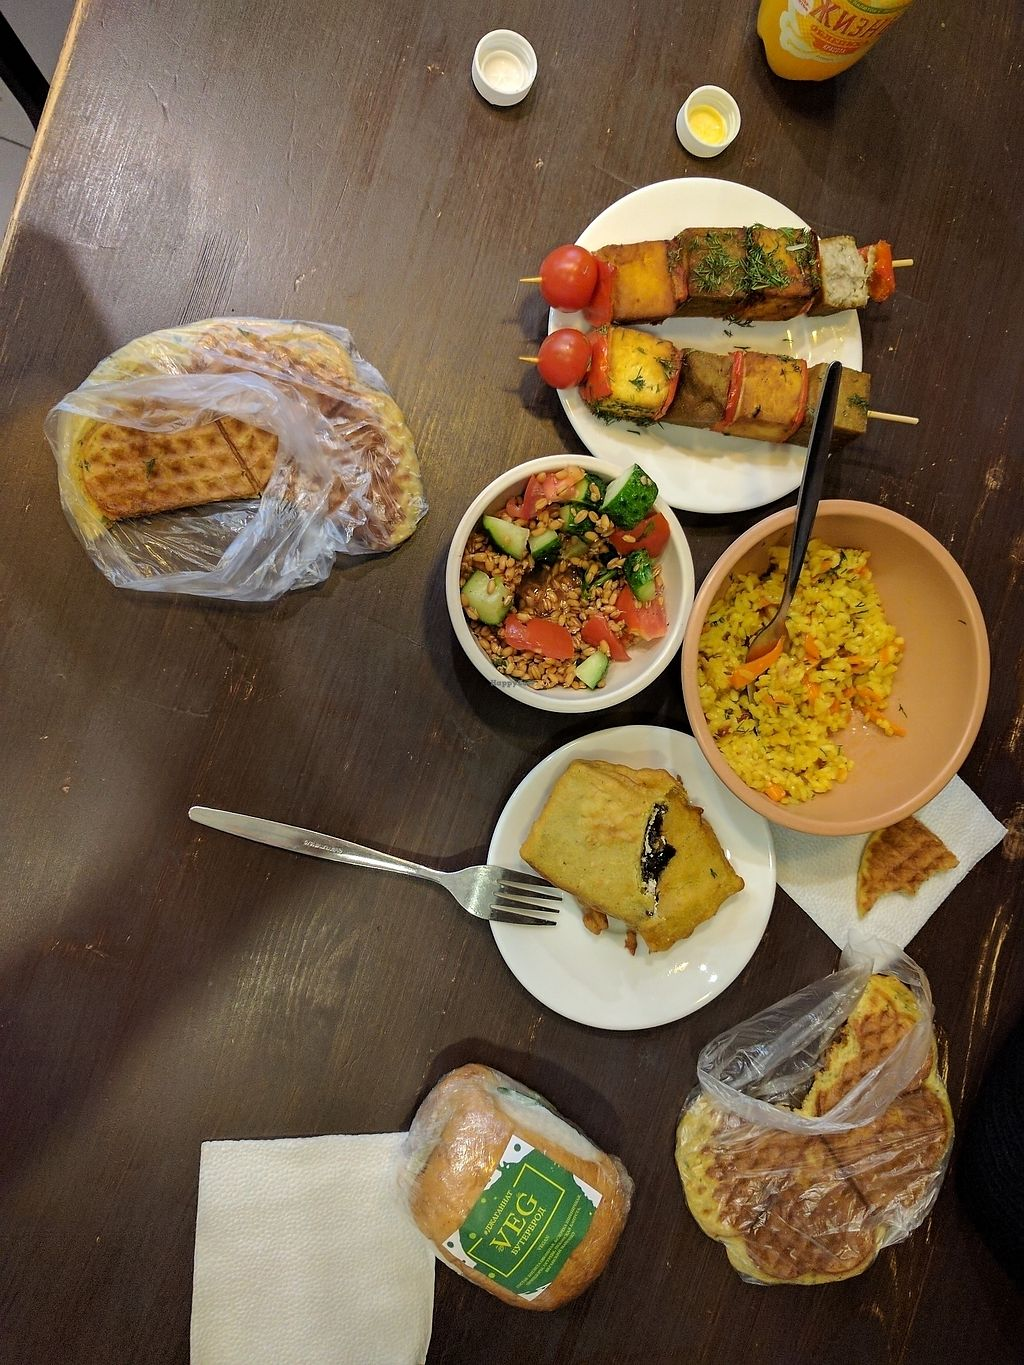 """Photo of Jagannath - Prospect Mira  by <a href=""""/members/profile/colonelpanic"""">colonelpanic</a> <br/>Meal for two, cost 960 roubles <br/> August 1, 2017  - <a href='/contact/abuse/image/86448/287563'>Report</a>"""